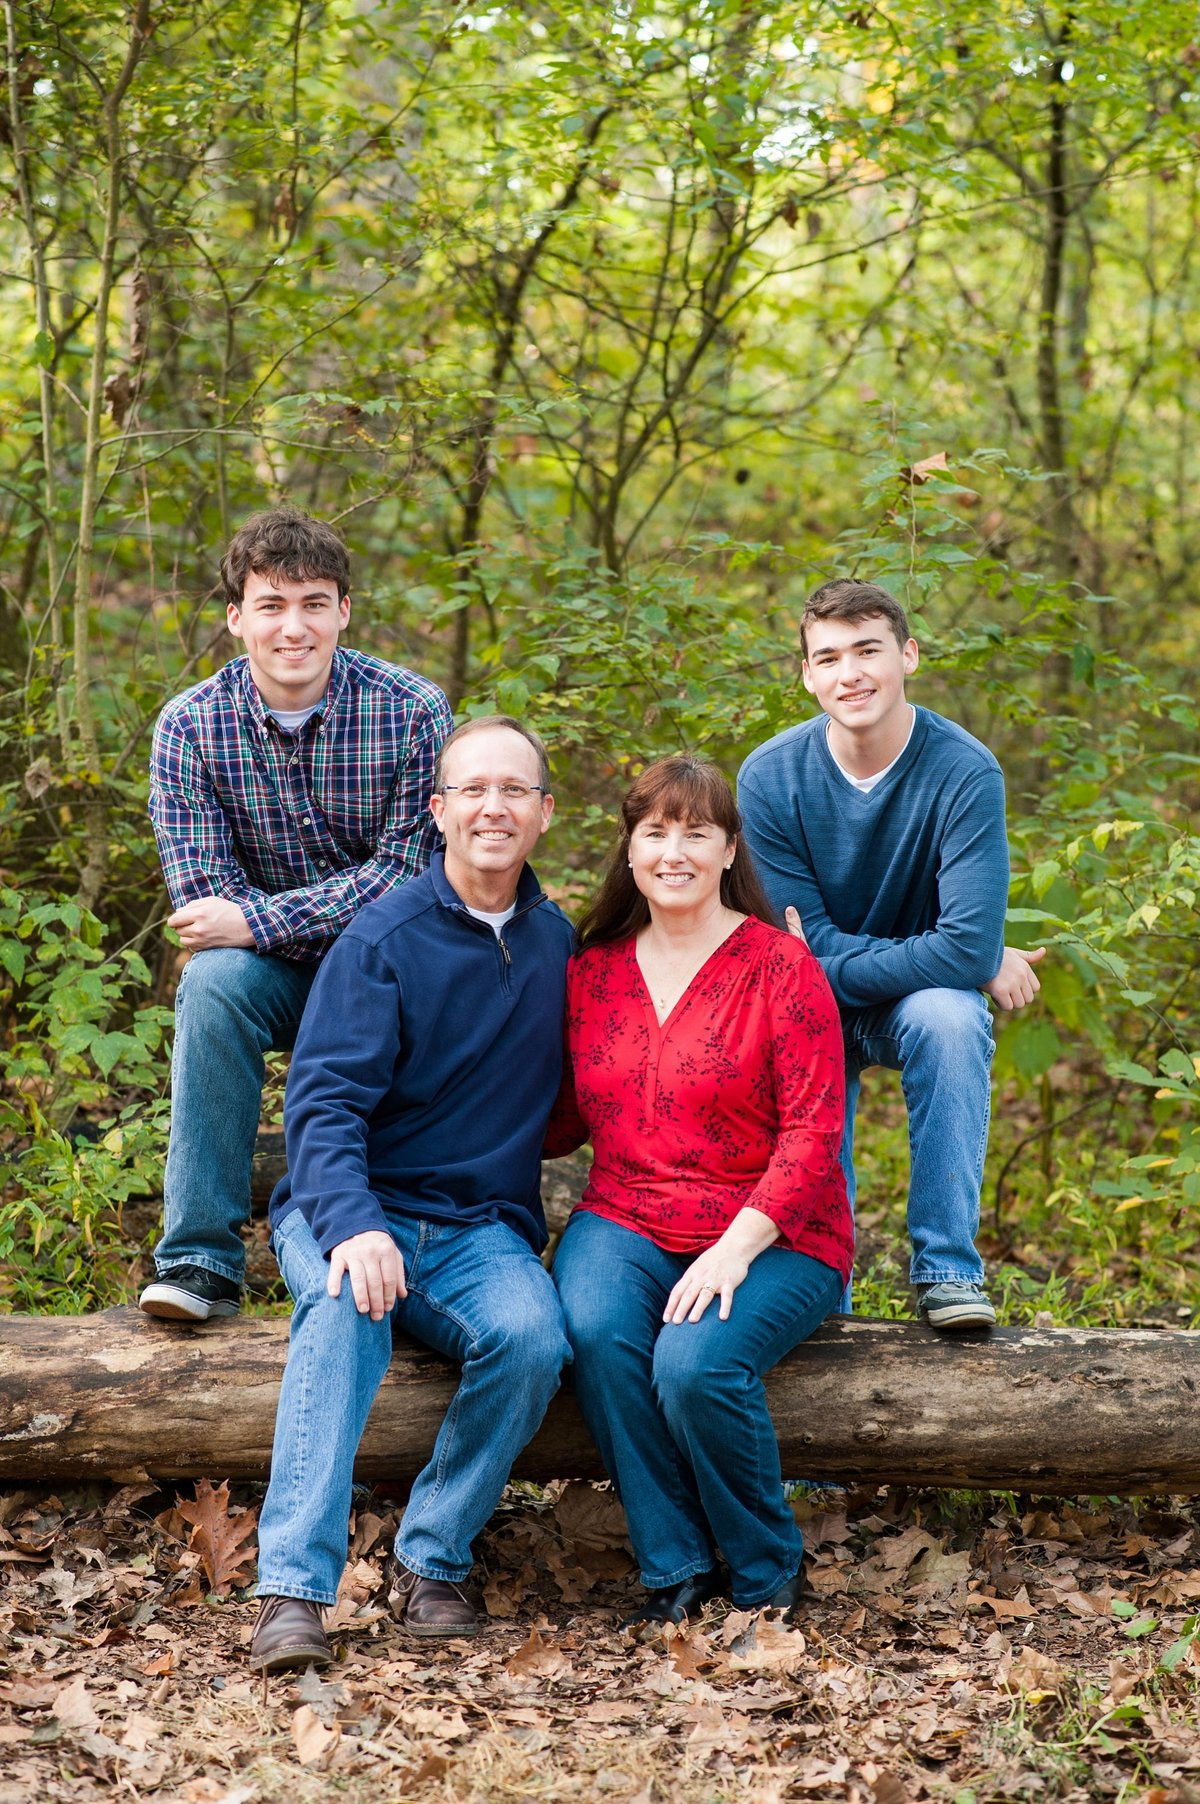 ricmond fall family portrait session at park in woods